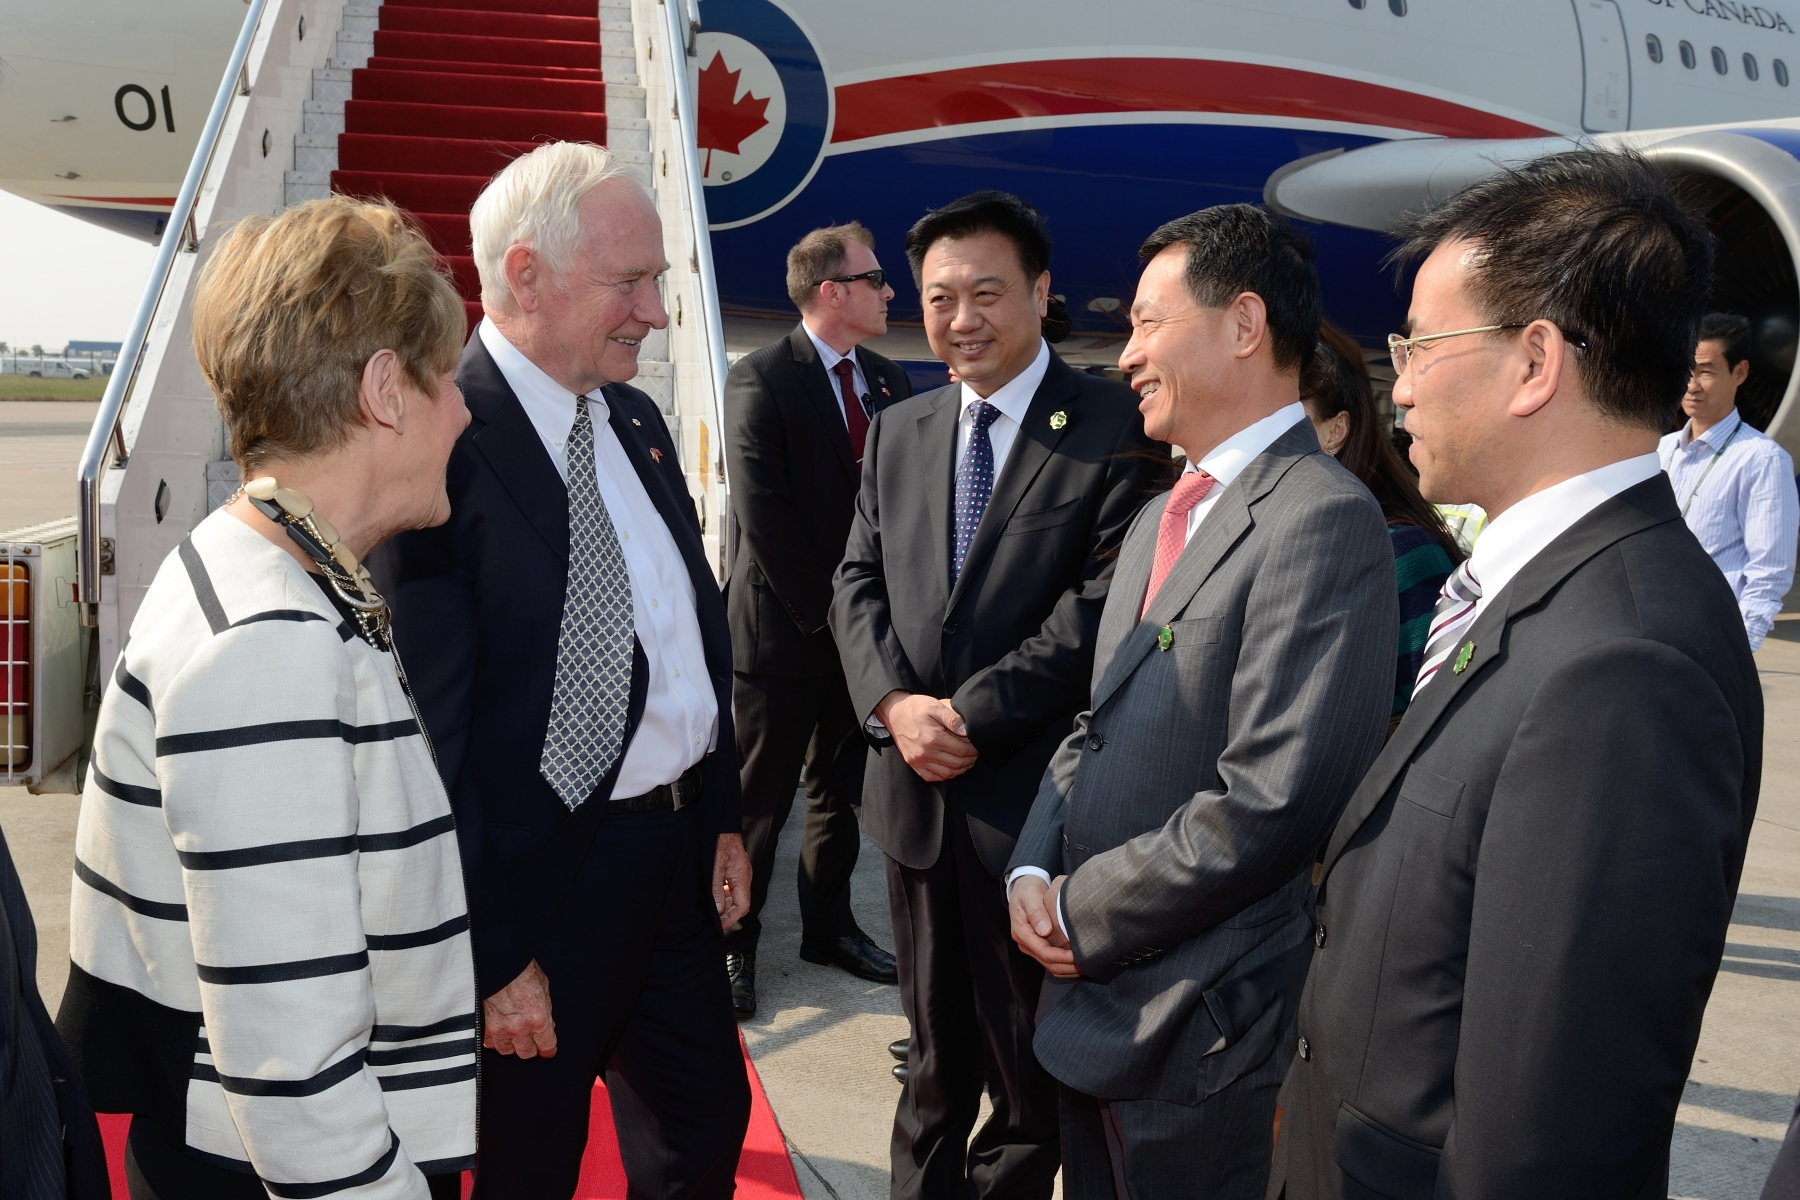 Upon their arrival in Guangzhou, Their Excellencies and the Canadian delegation were welcomed by Chinese government officials and Mr. Weldon Epp, Consul General of Canada in Guangzhou.